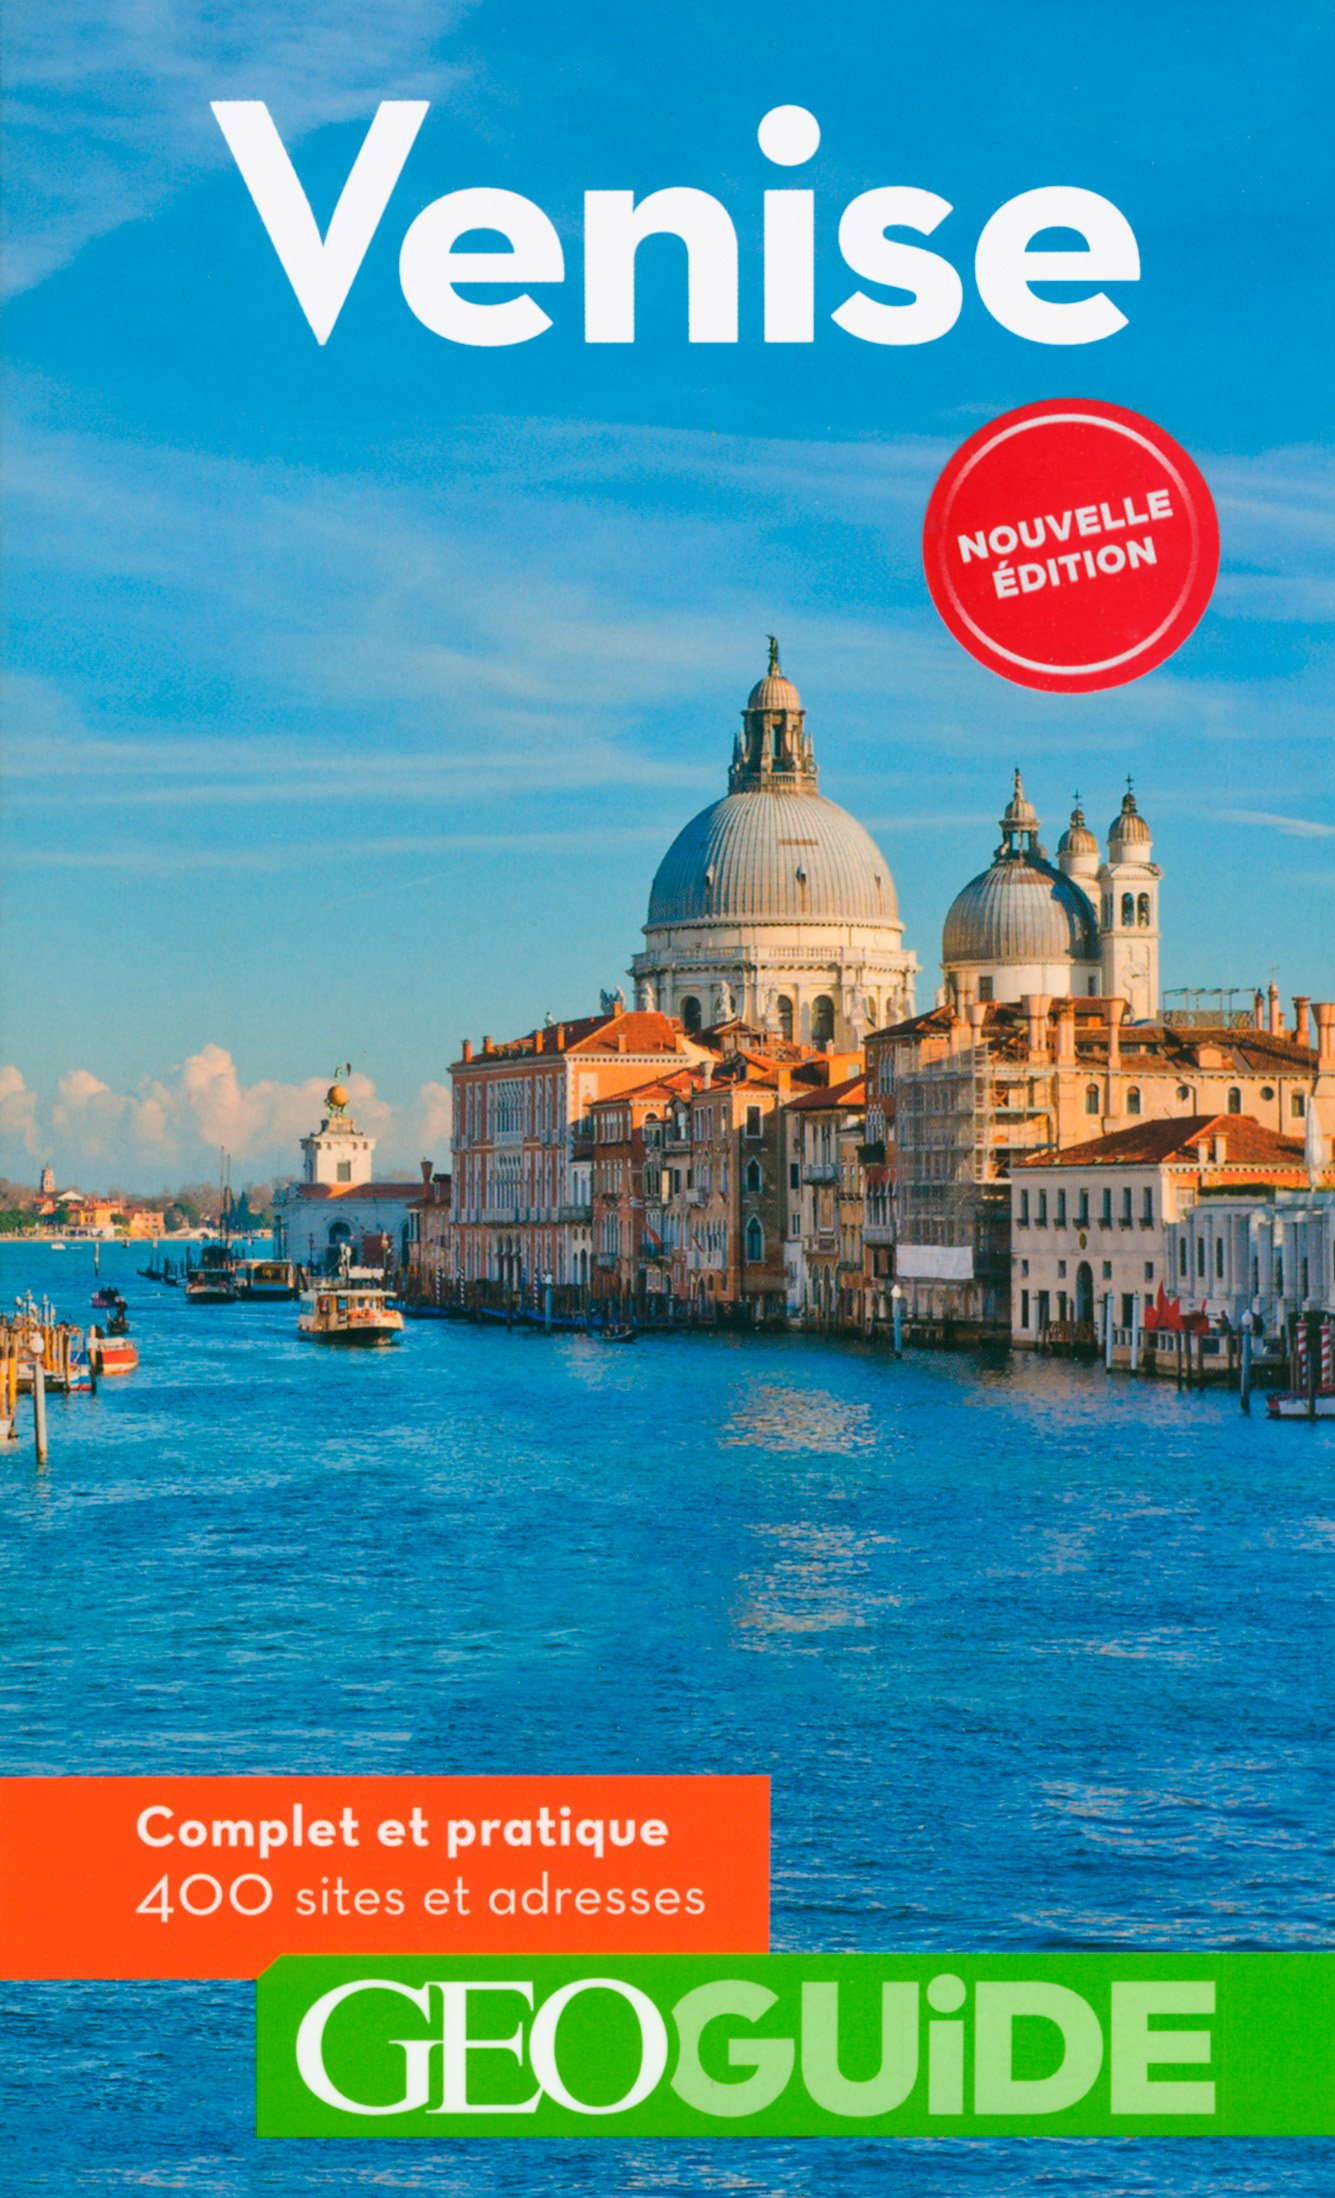 Guide GeoGuide Venise